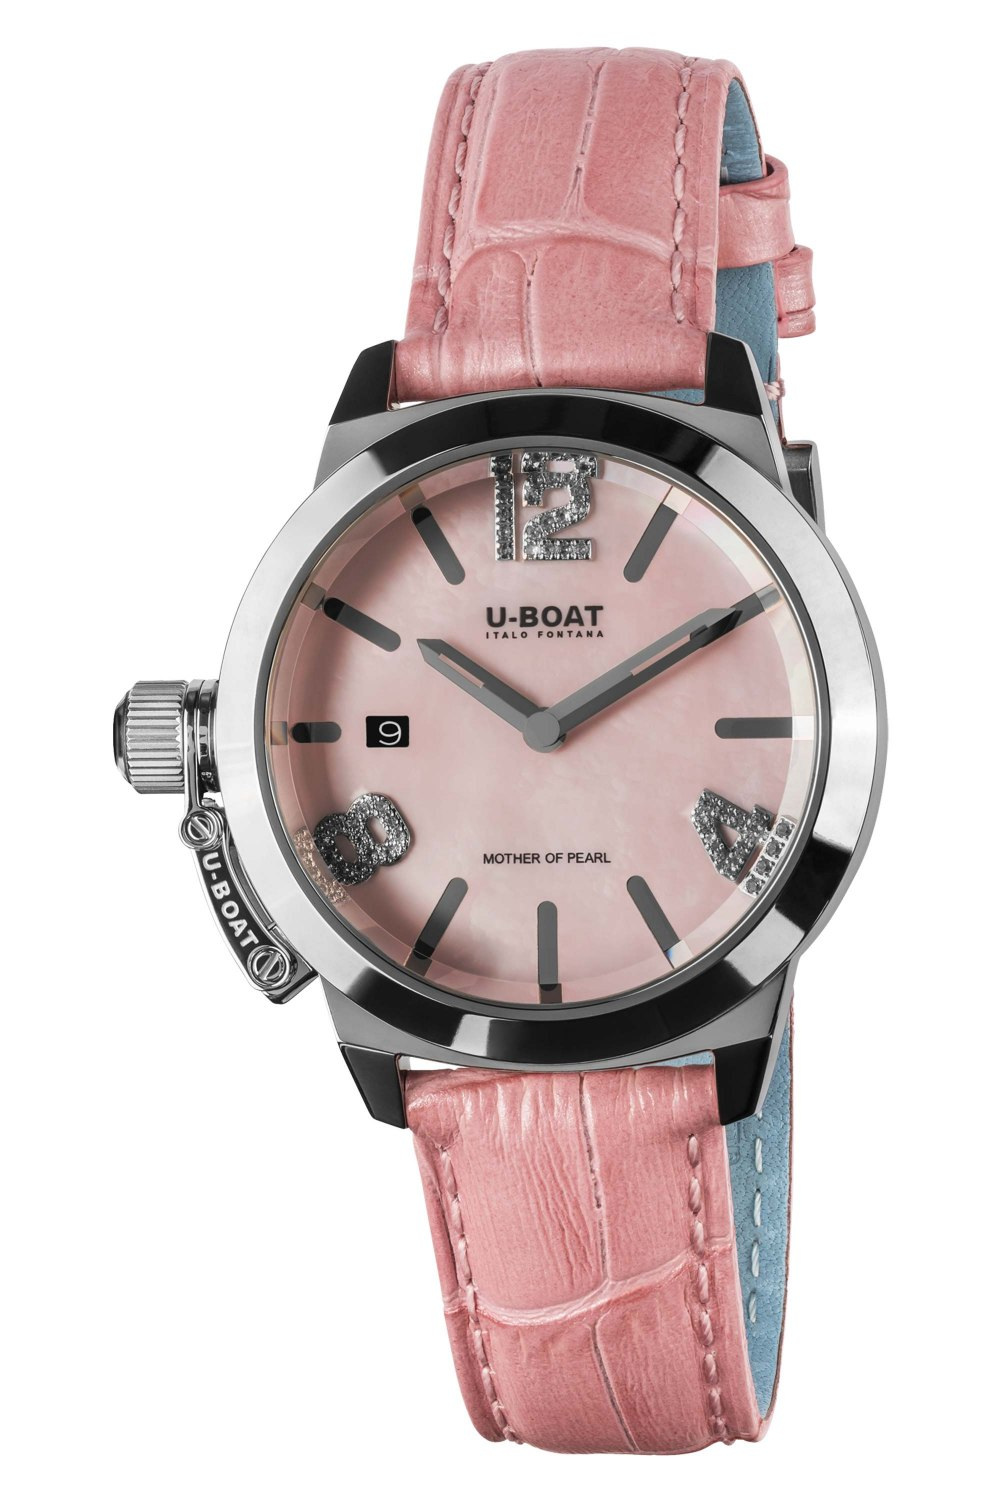 U-BOAT CLASSICO 38 Pink Mother of pearl 8480